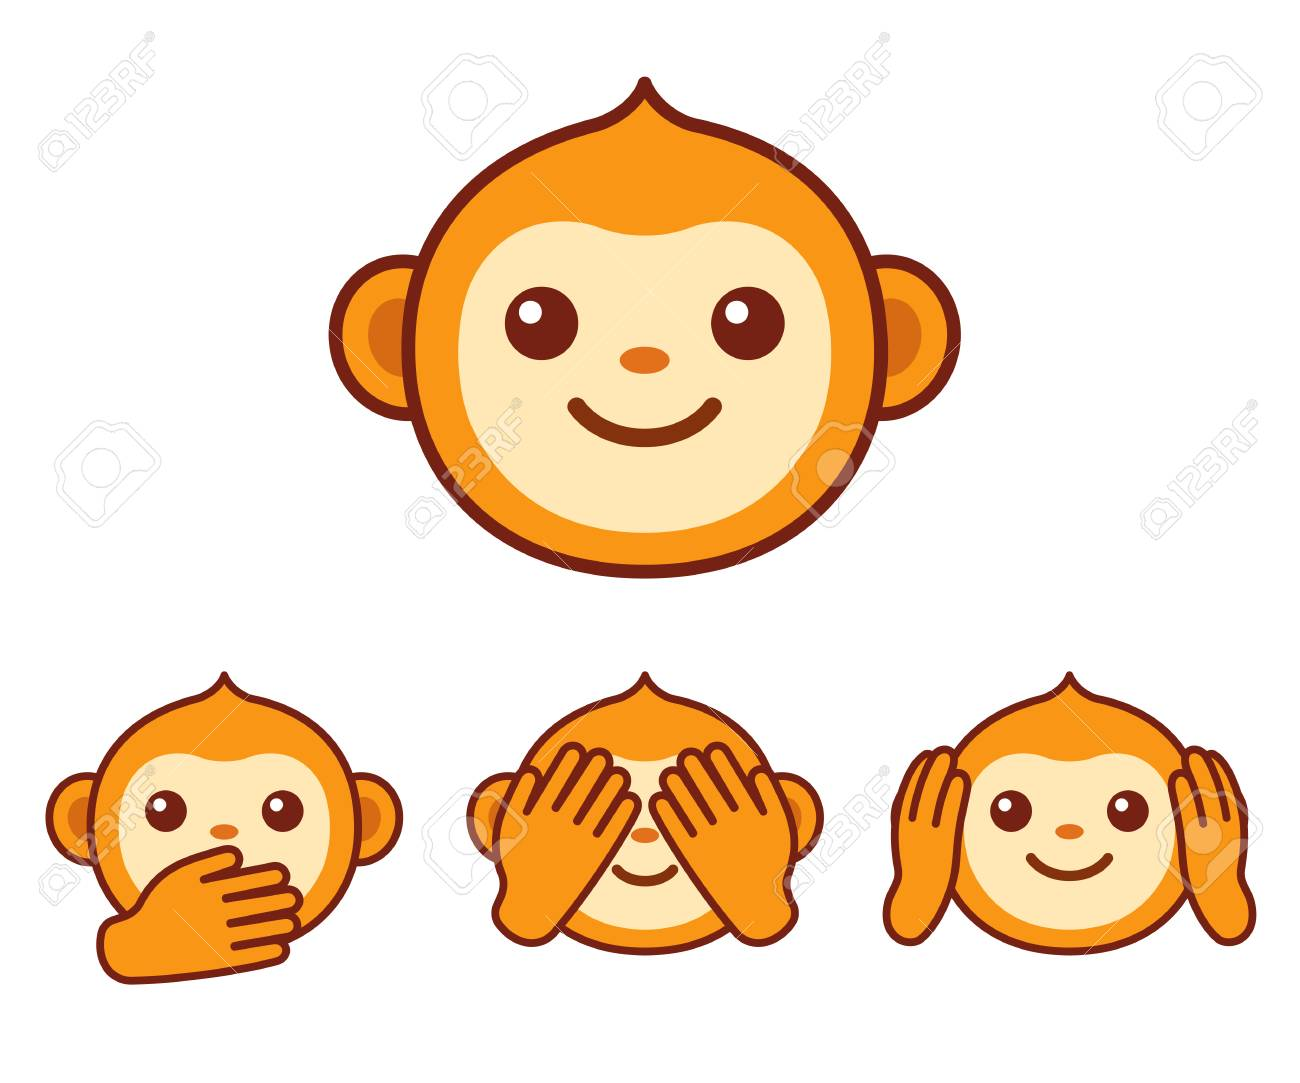 Cute Cartoon Monkey Face Icon Three Wise Monkeys With Hands